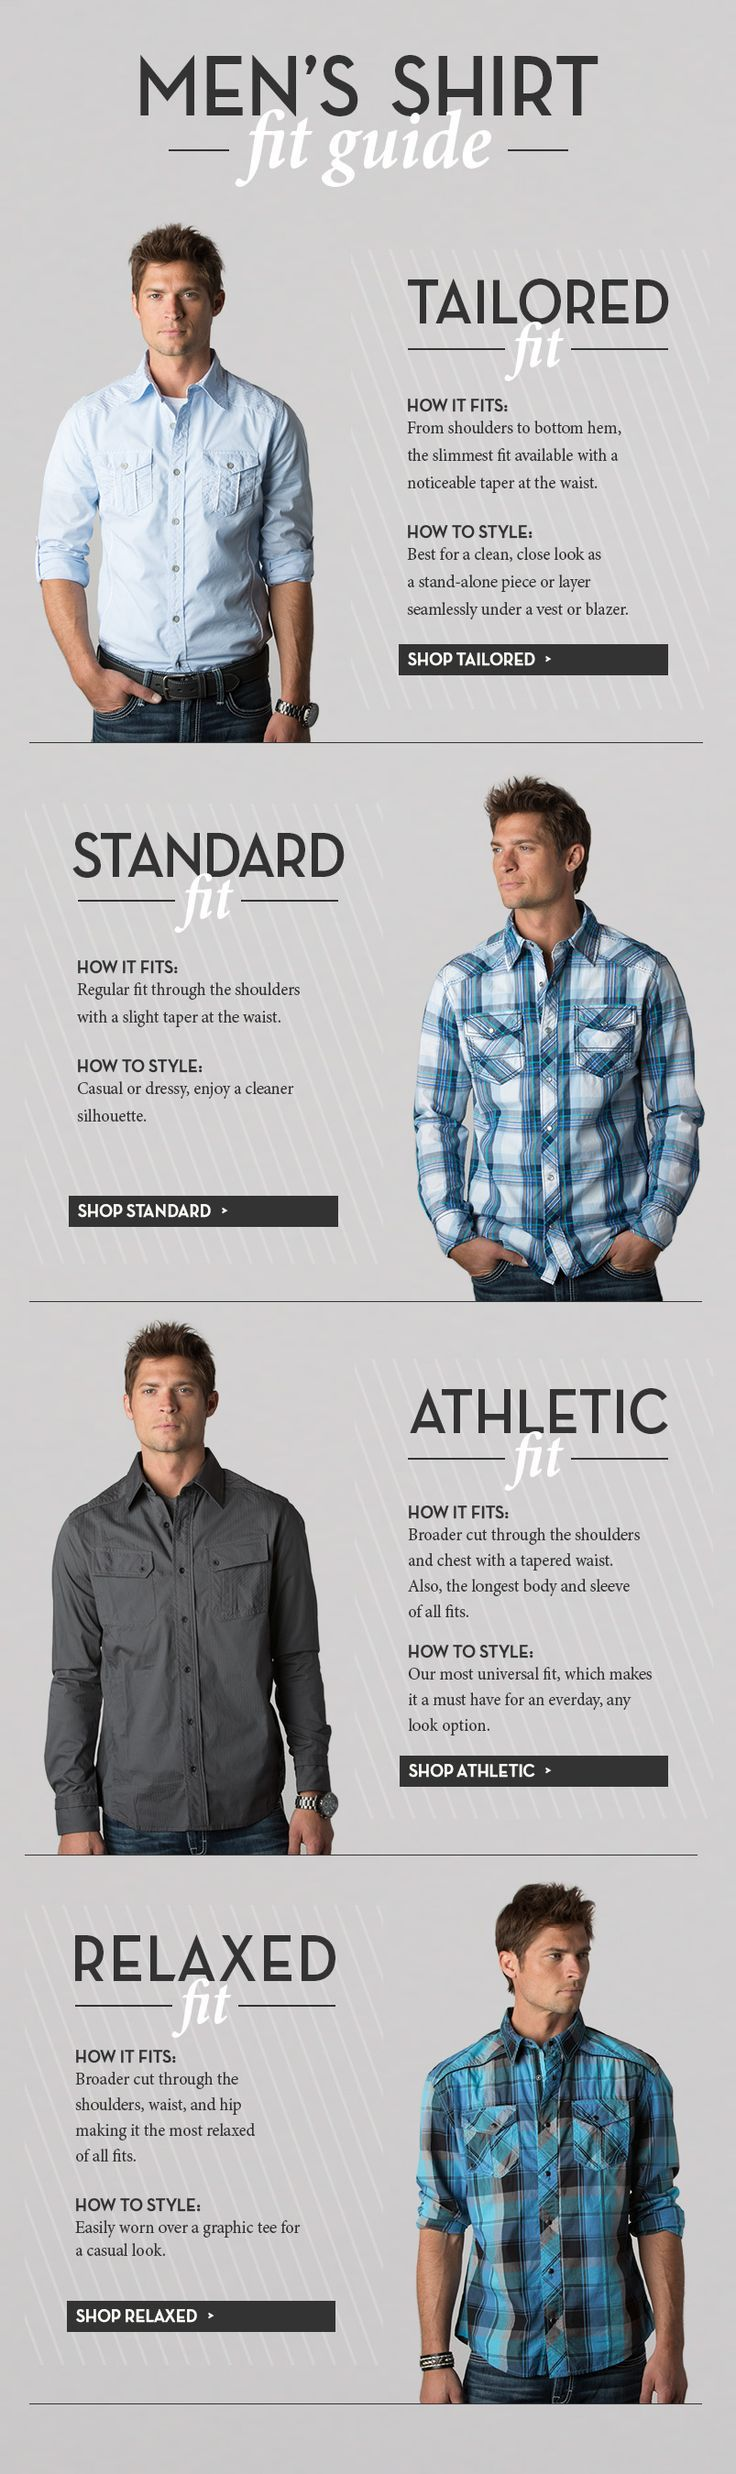 Men's Shirt fit guide. Customize your made to measure shirt: http://tailor4less.com